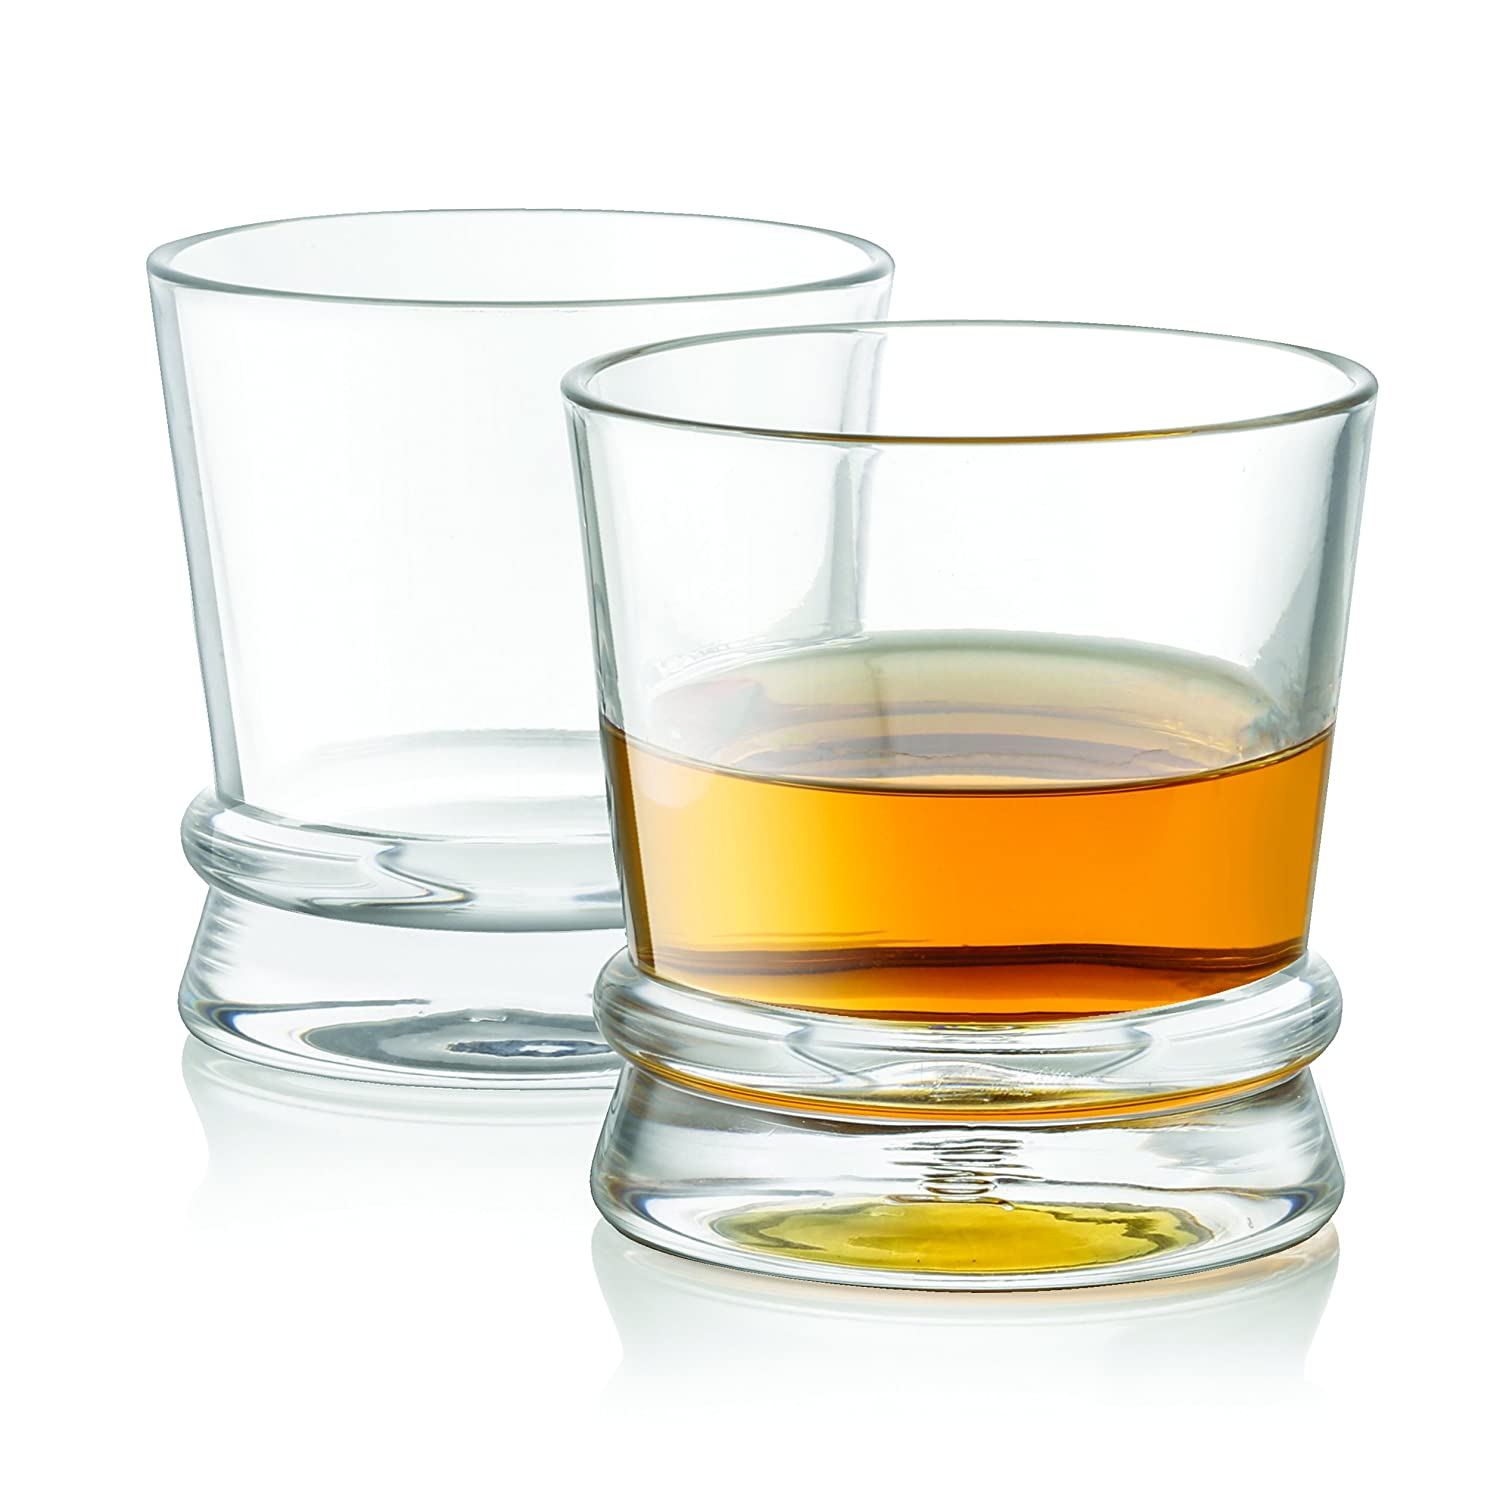 JoyJolt Afina Scotch Glasses, Old Fashioned Whiskey Glasses 10-Ounce, Ultra Clear Whiskey Glass for Bourbon and Liquor Set Of 2 Glassware JG10223